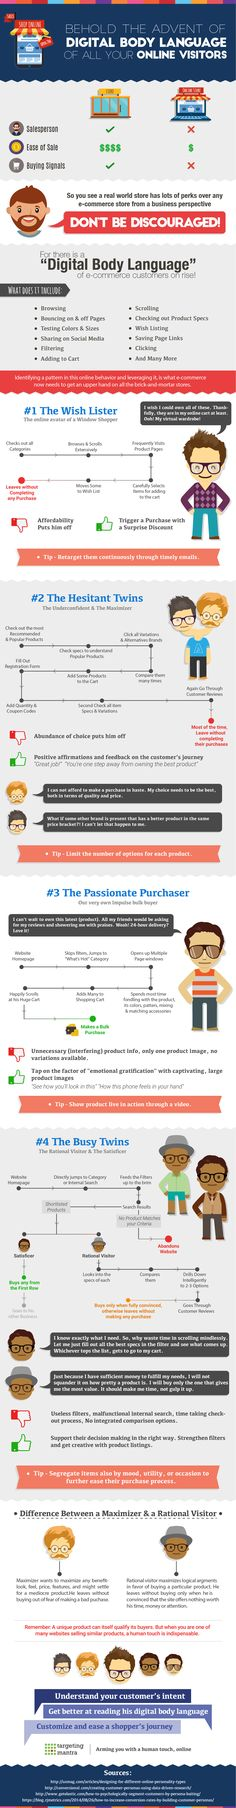 Decoding the Top 4 Digital Visitors and Turning Them into Shoppers (Infographic)